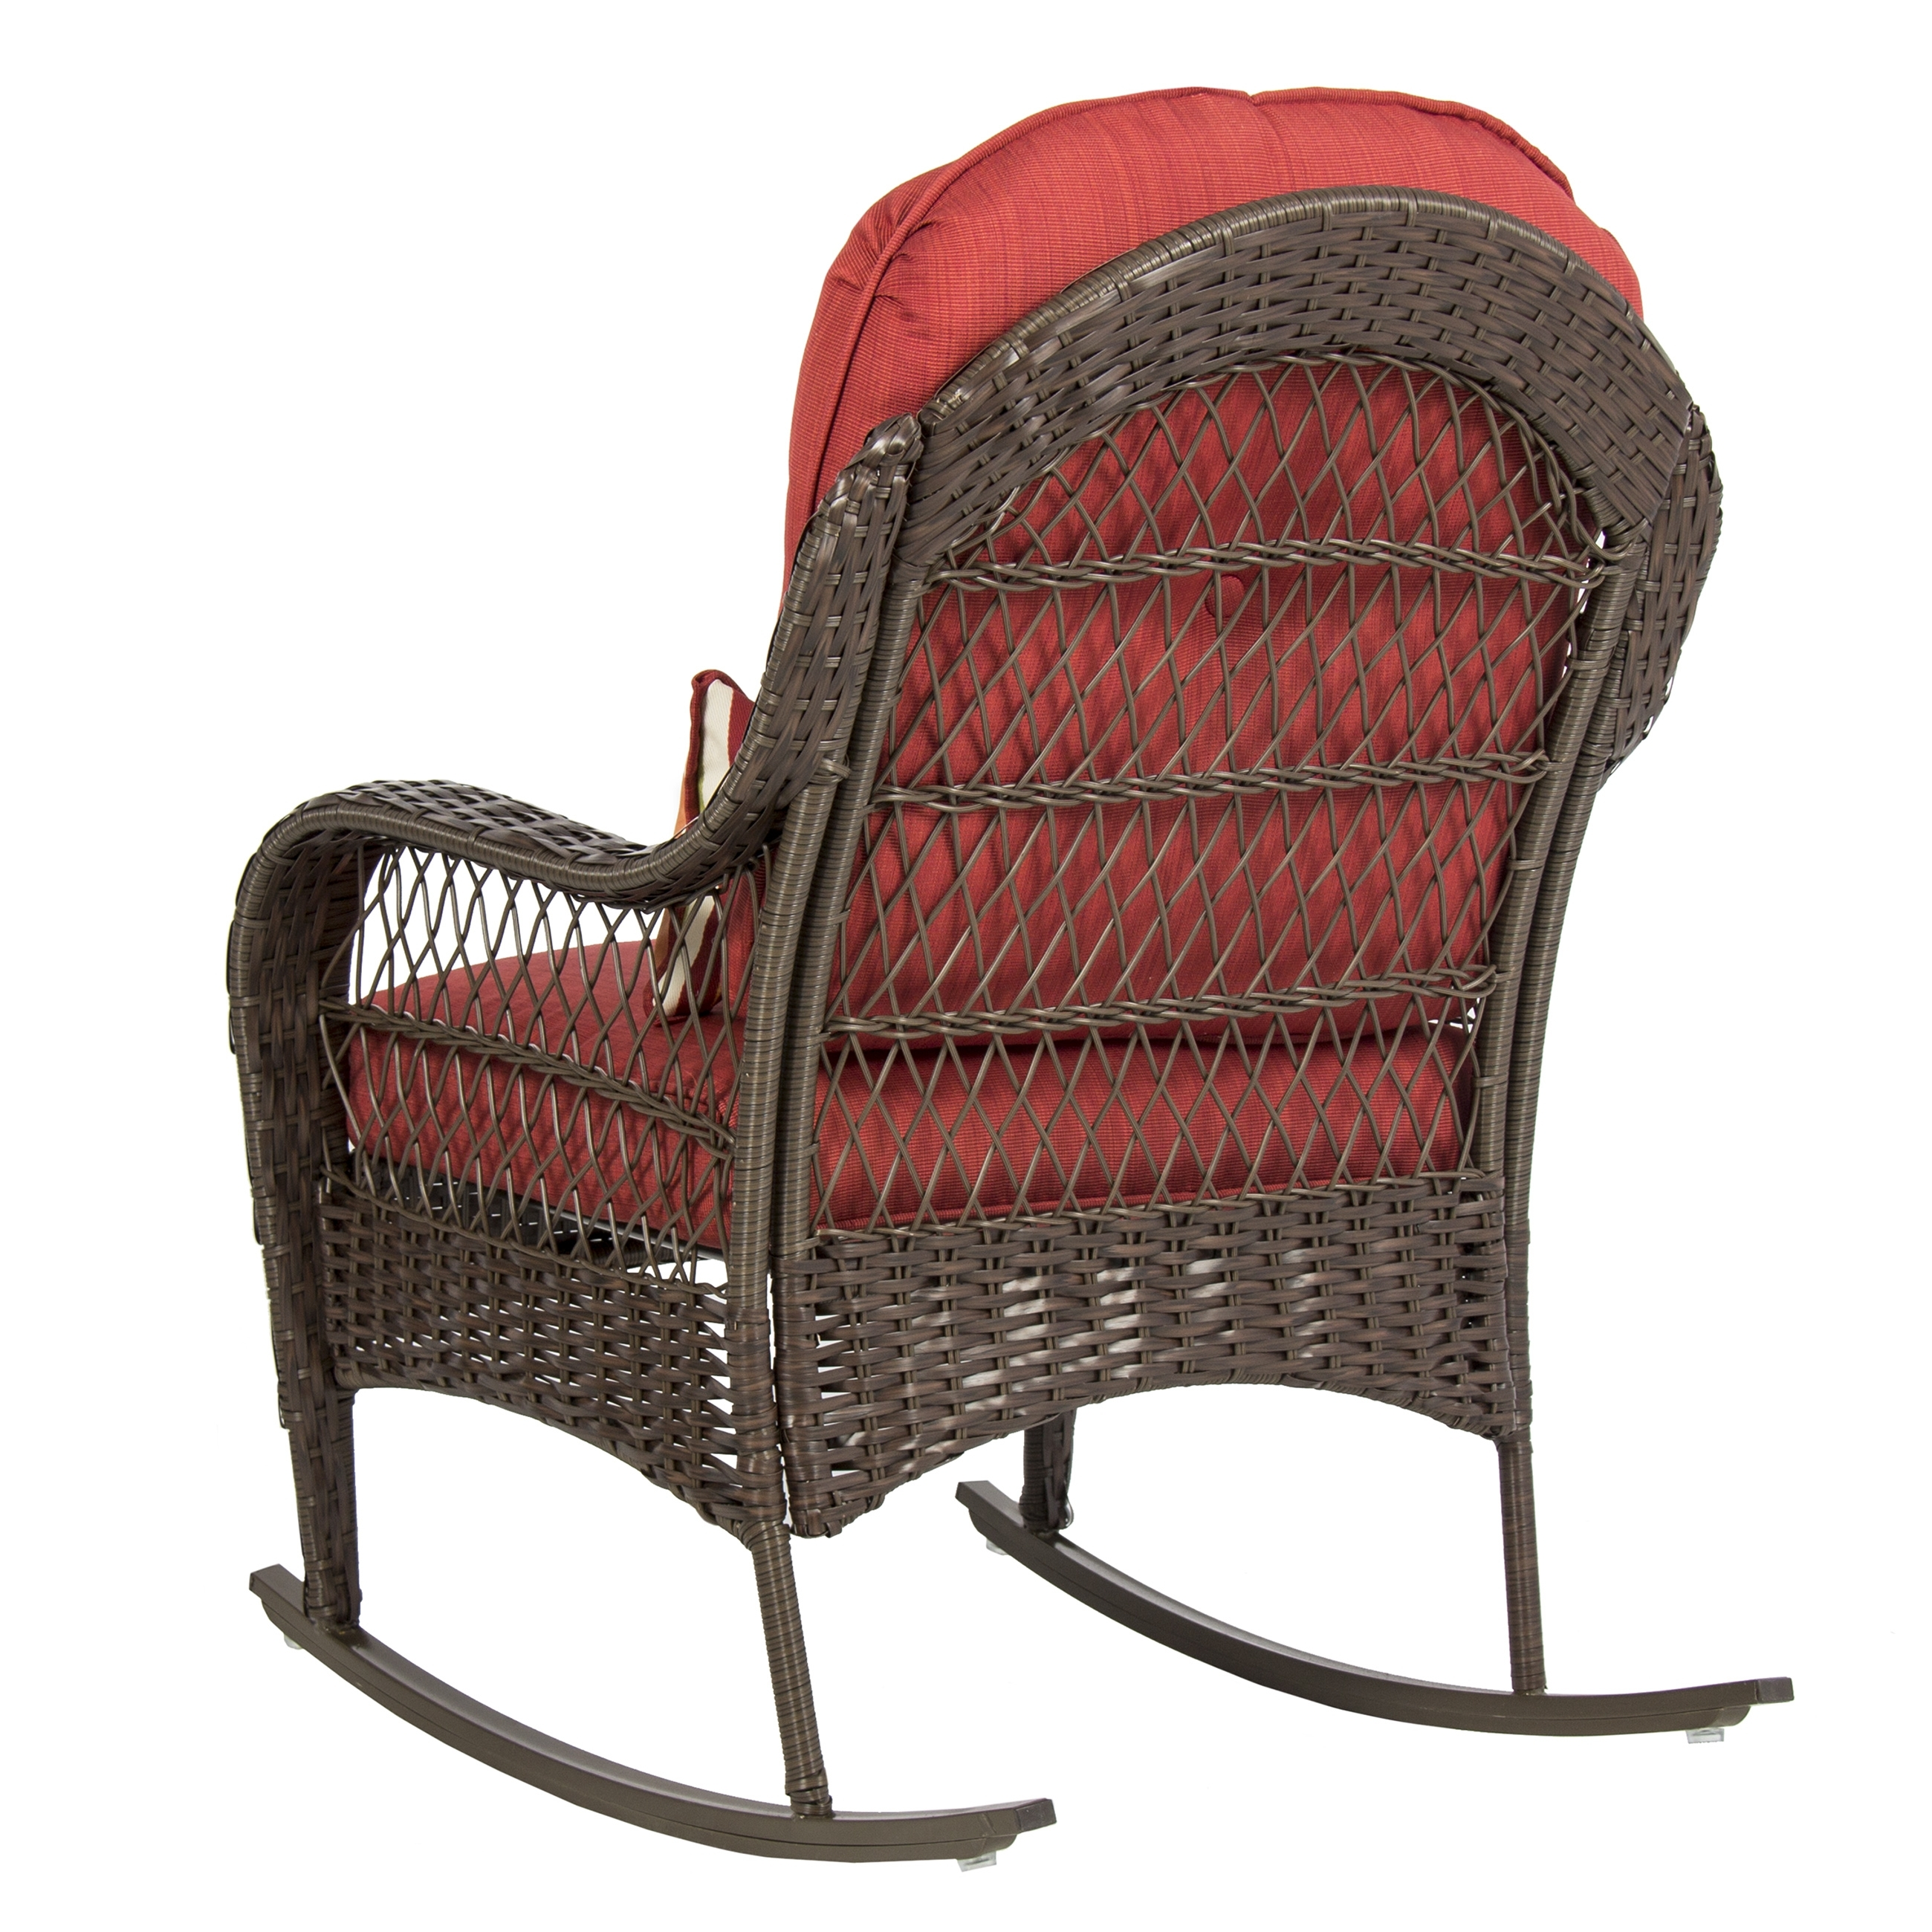 Best Choice Products Wicker Rocking Chair Patio Porch Deck Furniture For Favorite Outdoor Wicker Rocking Chairs With Cushions (View 2 of 15)